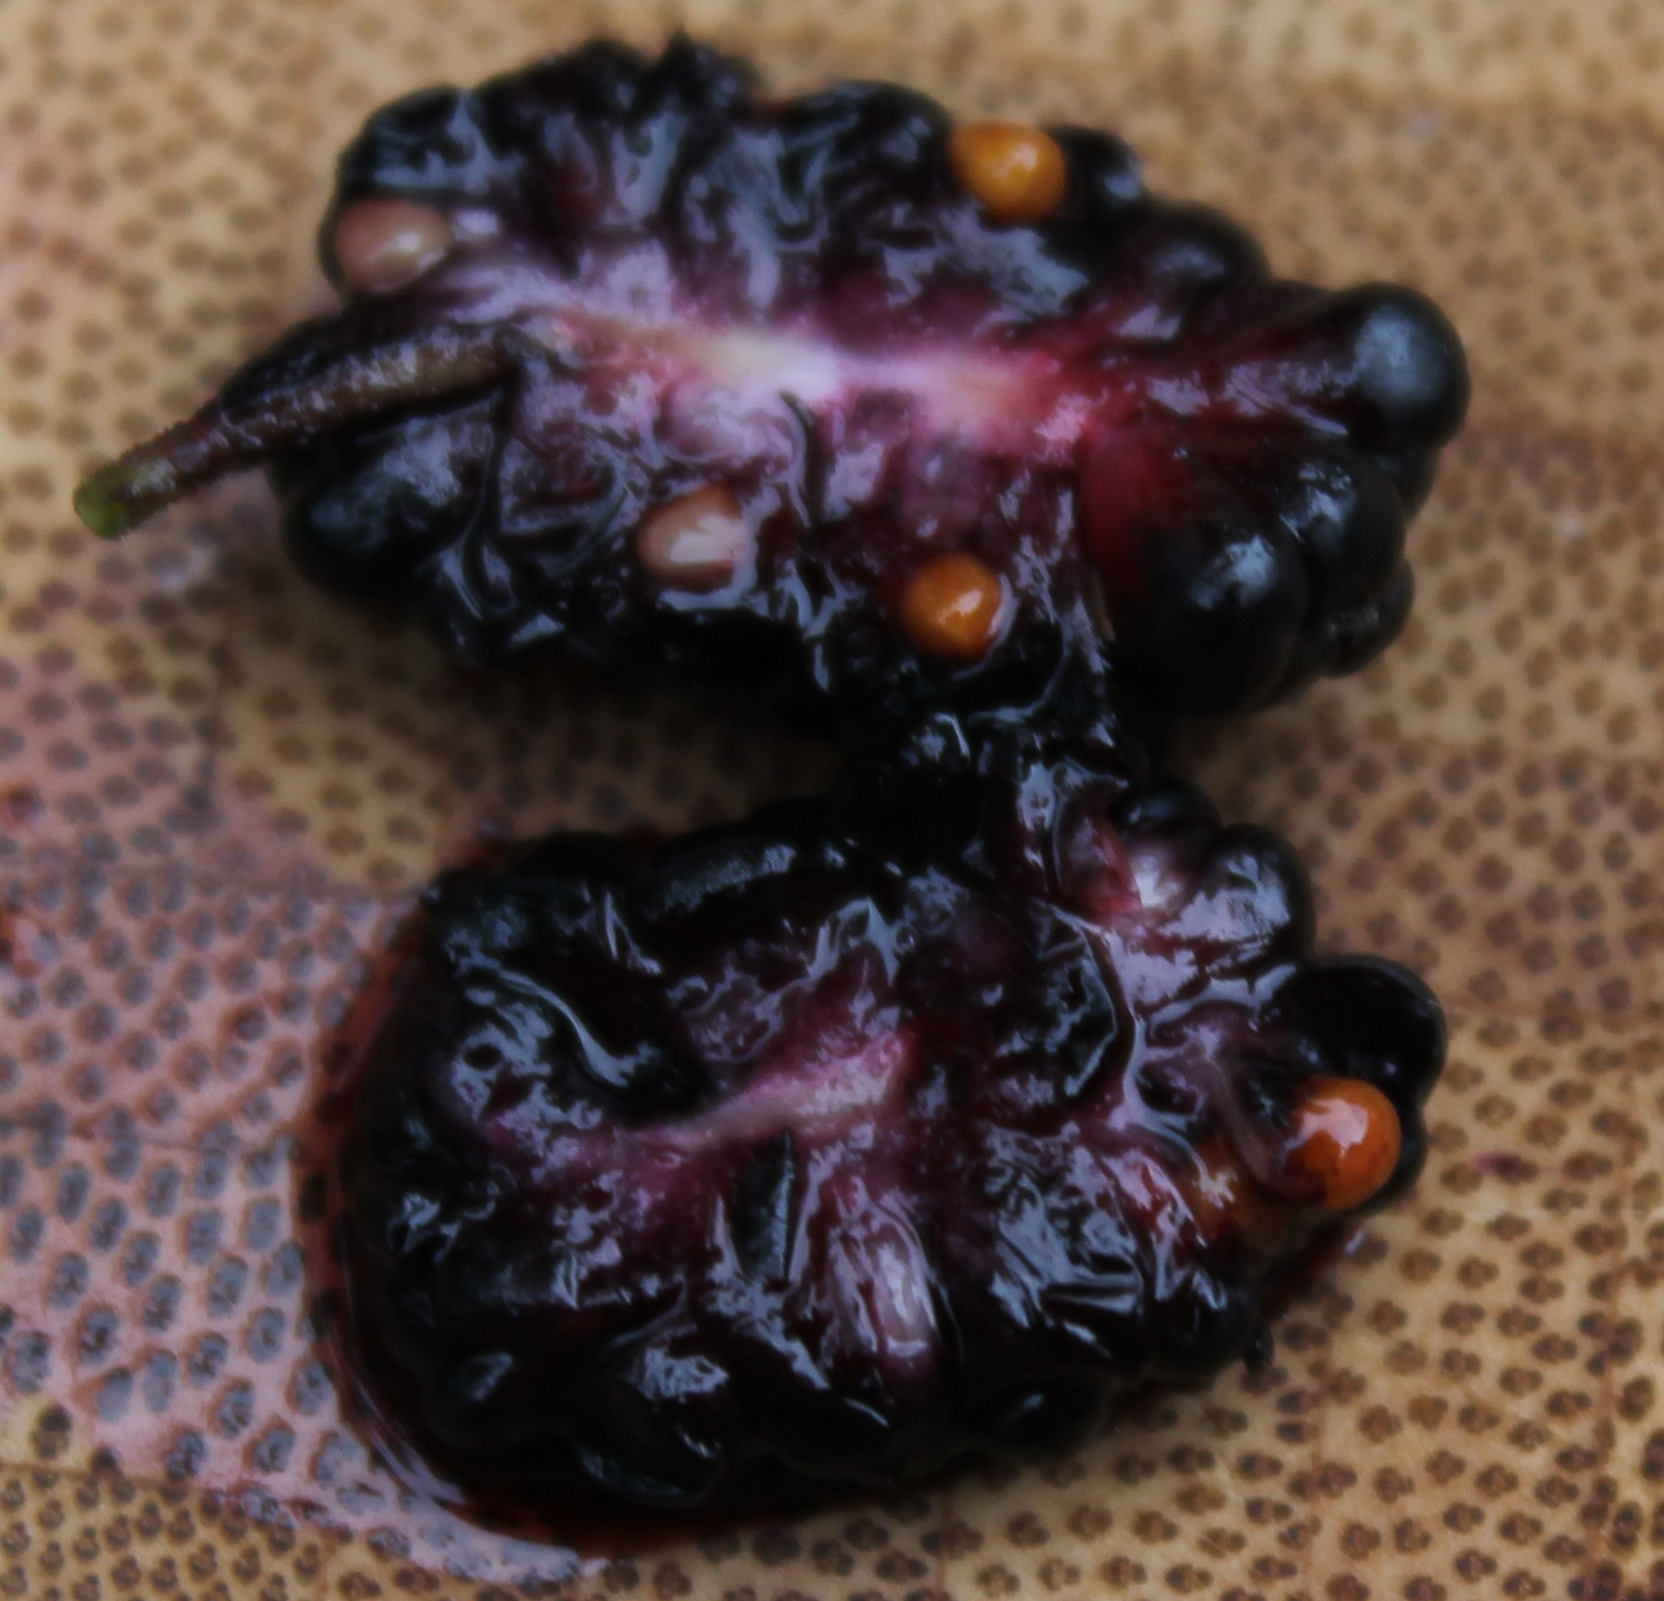 Figs and Mulberries inside and out  The Botanist in the